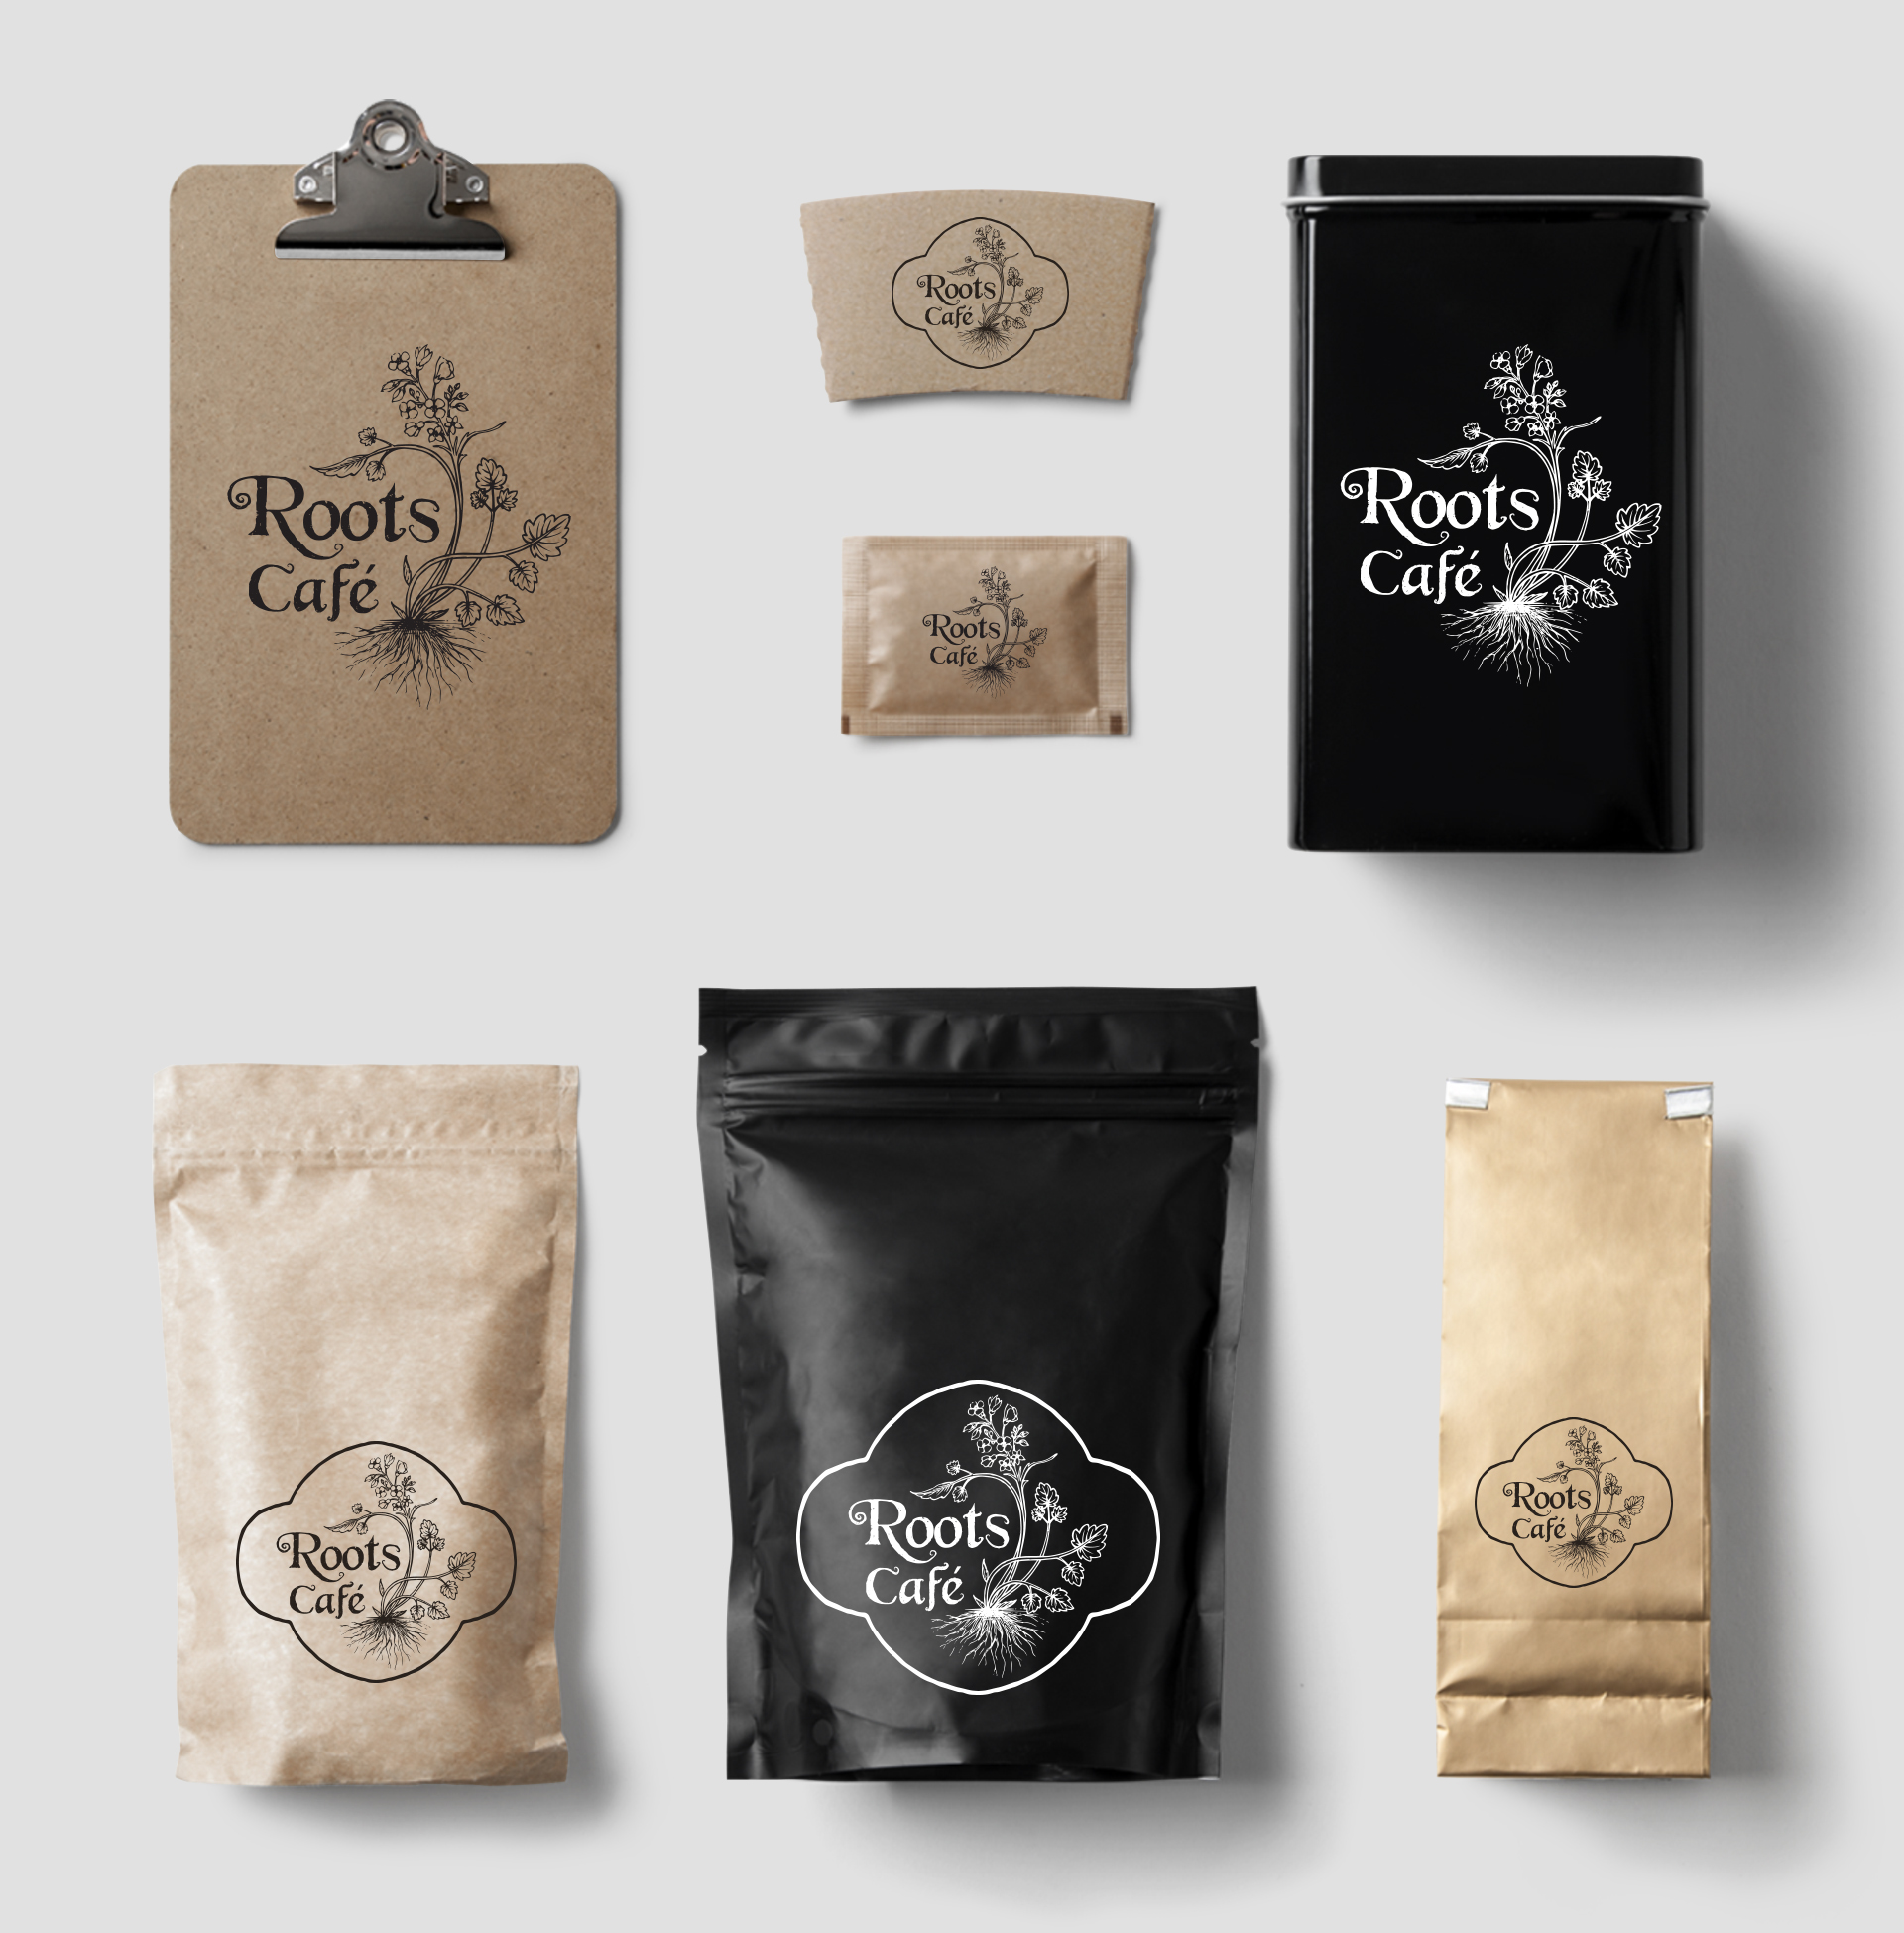 Roots Café Coffee Stationery Mockup - Eleonora Casetta